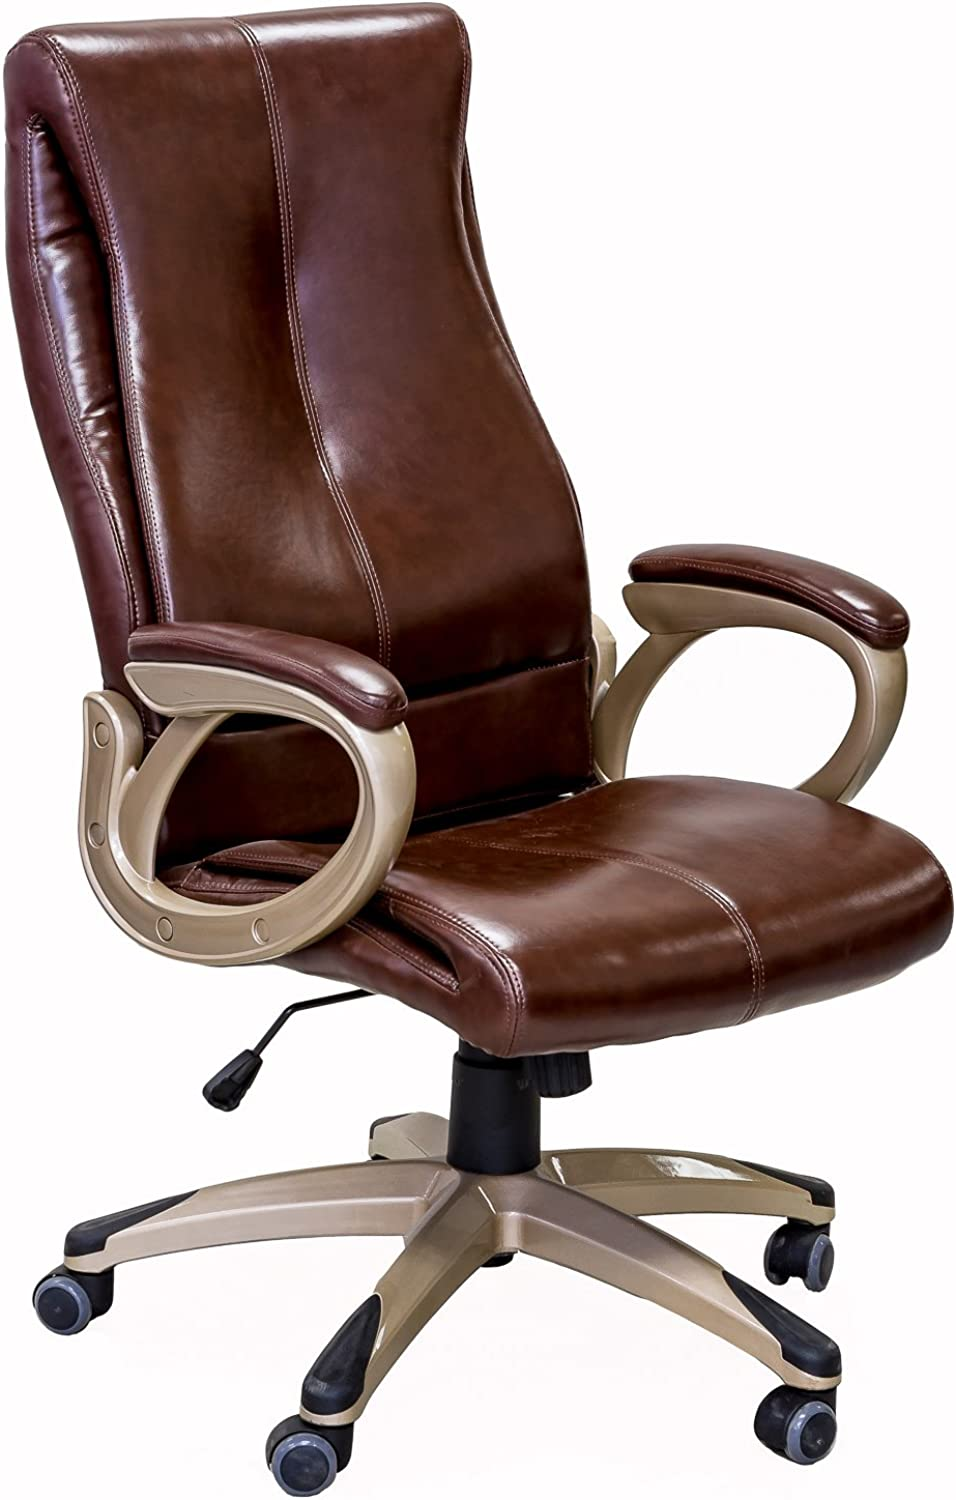 Viscologic Series YS-8709 Executive Swivel Office Chair (Brown)